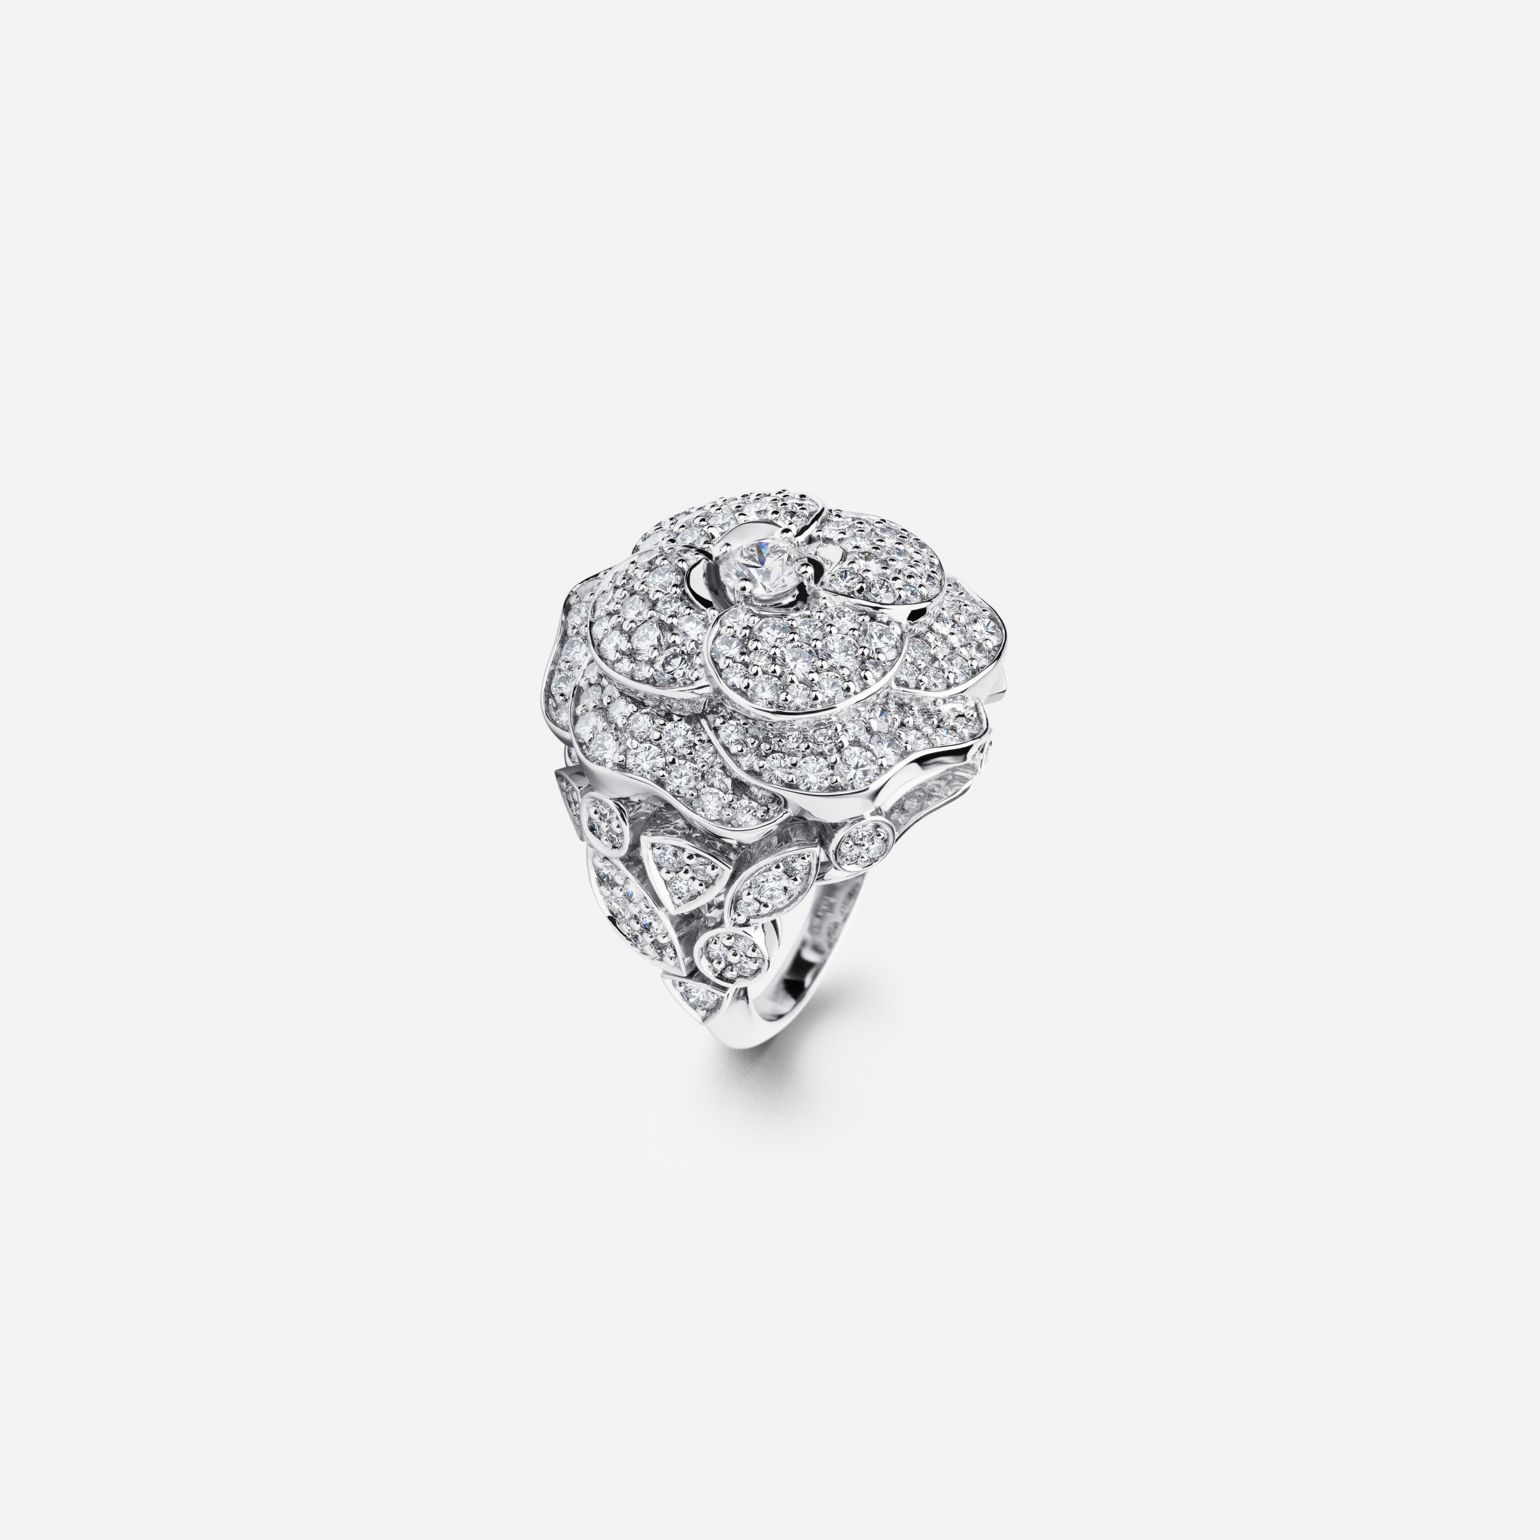 Camélia ring Pétales de Camélia ring, small version, in 18K white gold and diamonds with one center diamond